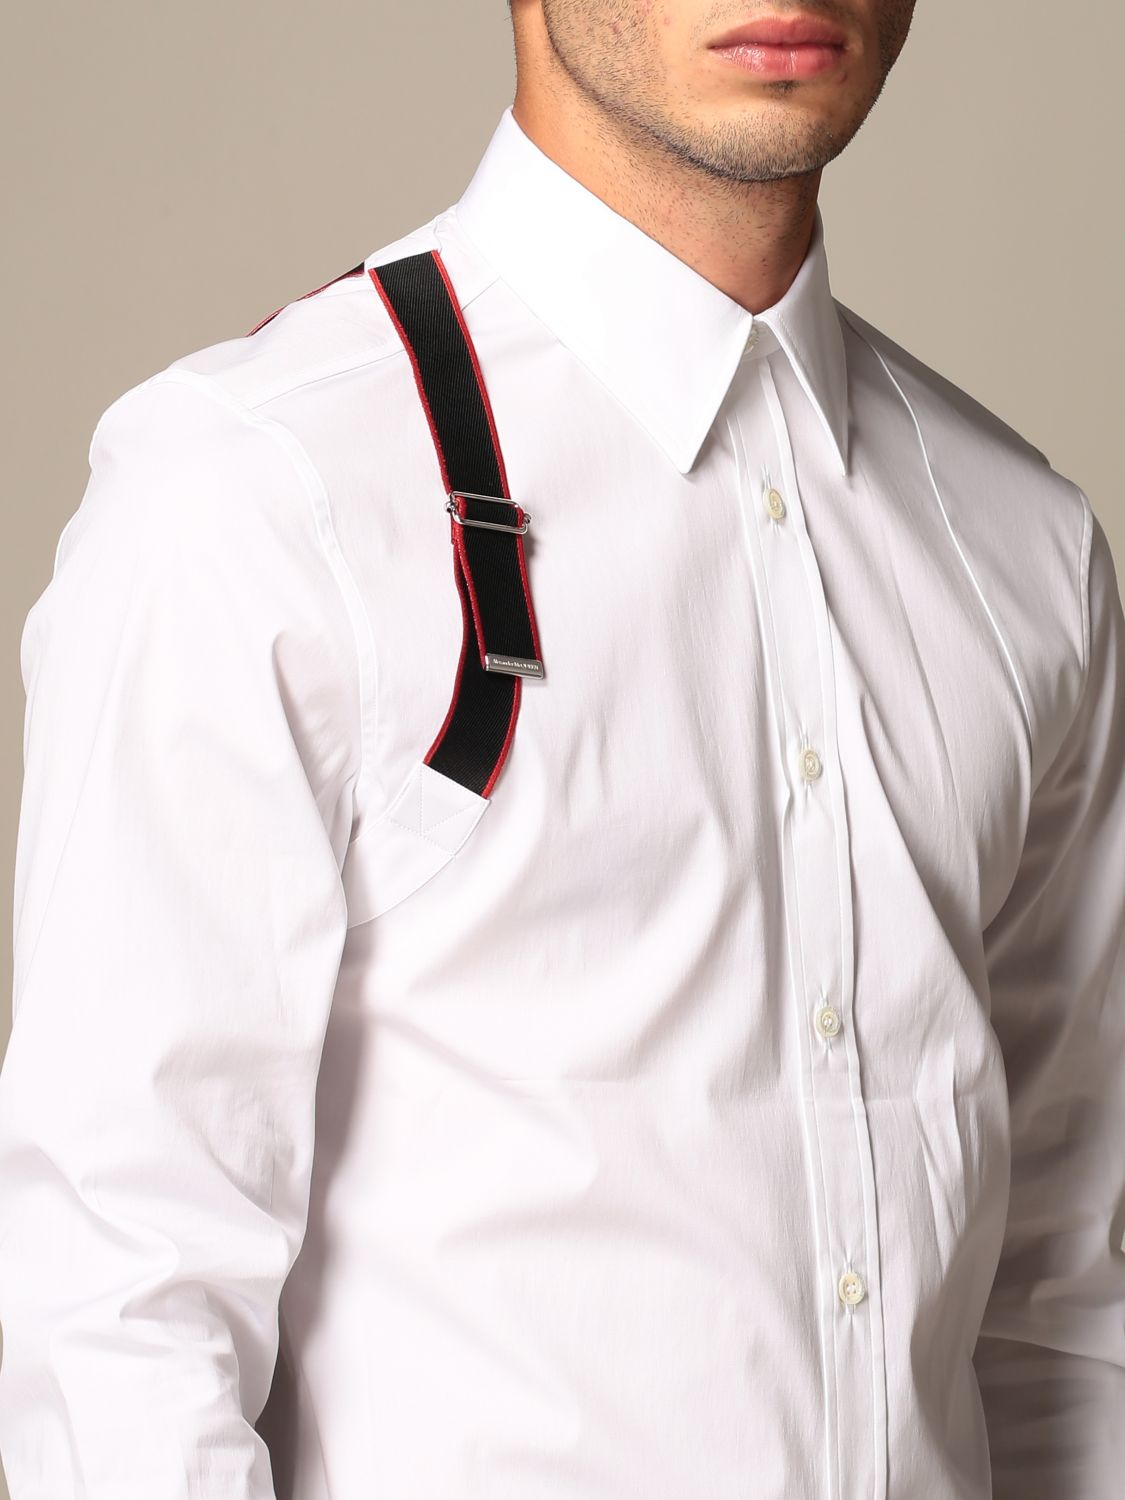 Shirt Alexander Mcqueen: Alexander McQueen shirt with buckle white 4